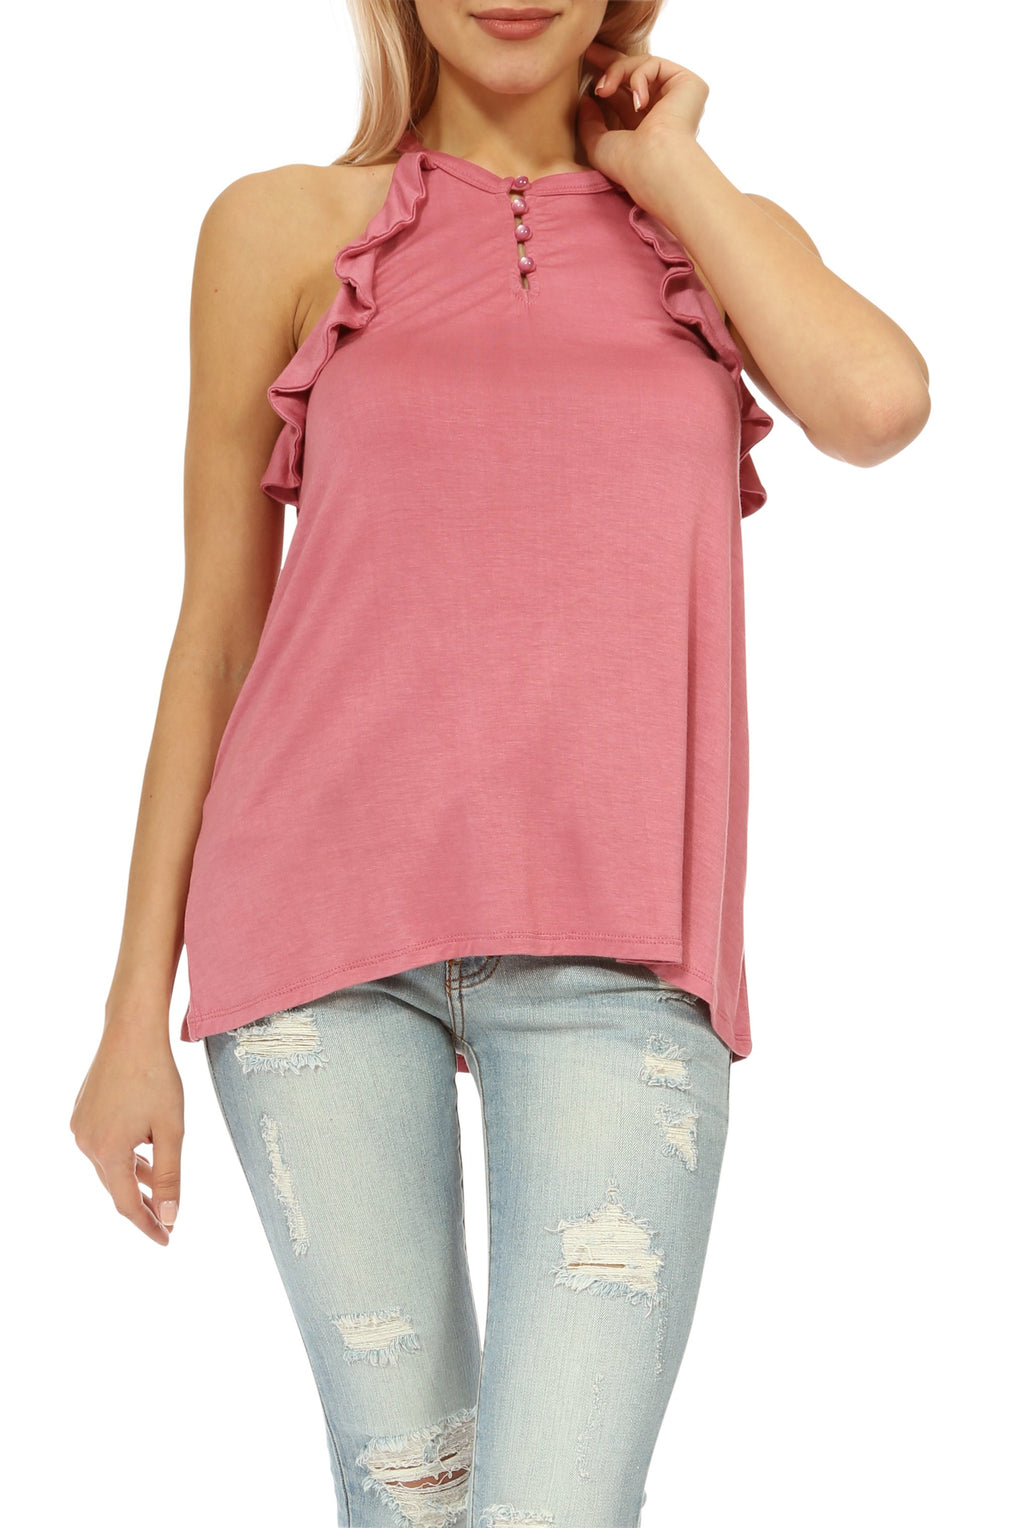 Teeze Me | Halter Armhole Ruffled Top  | Dusty Rose - Teeze Me